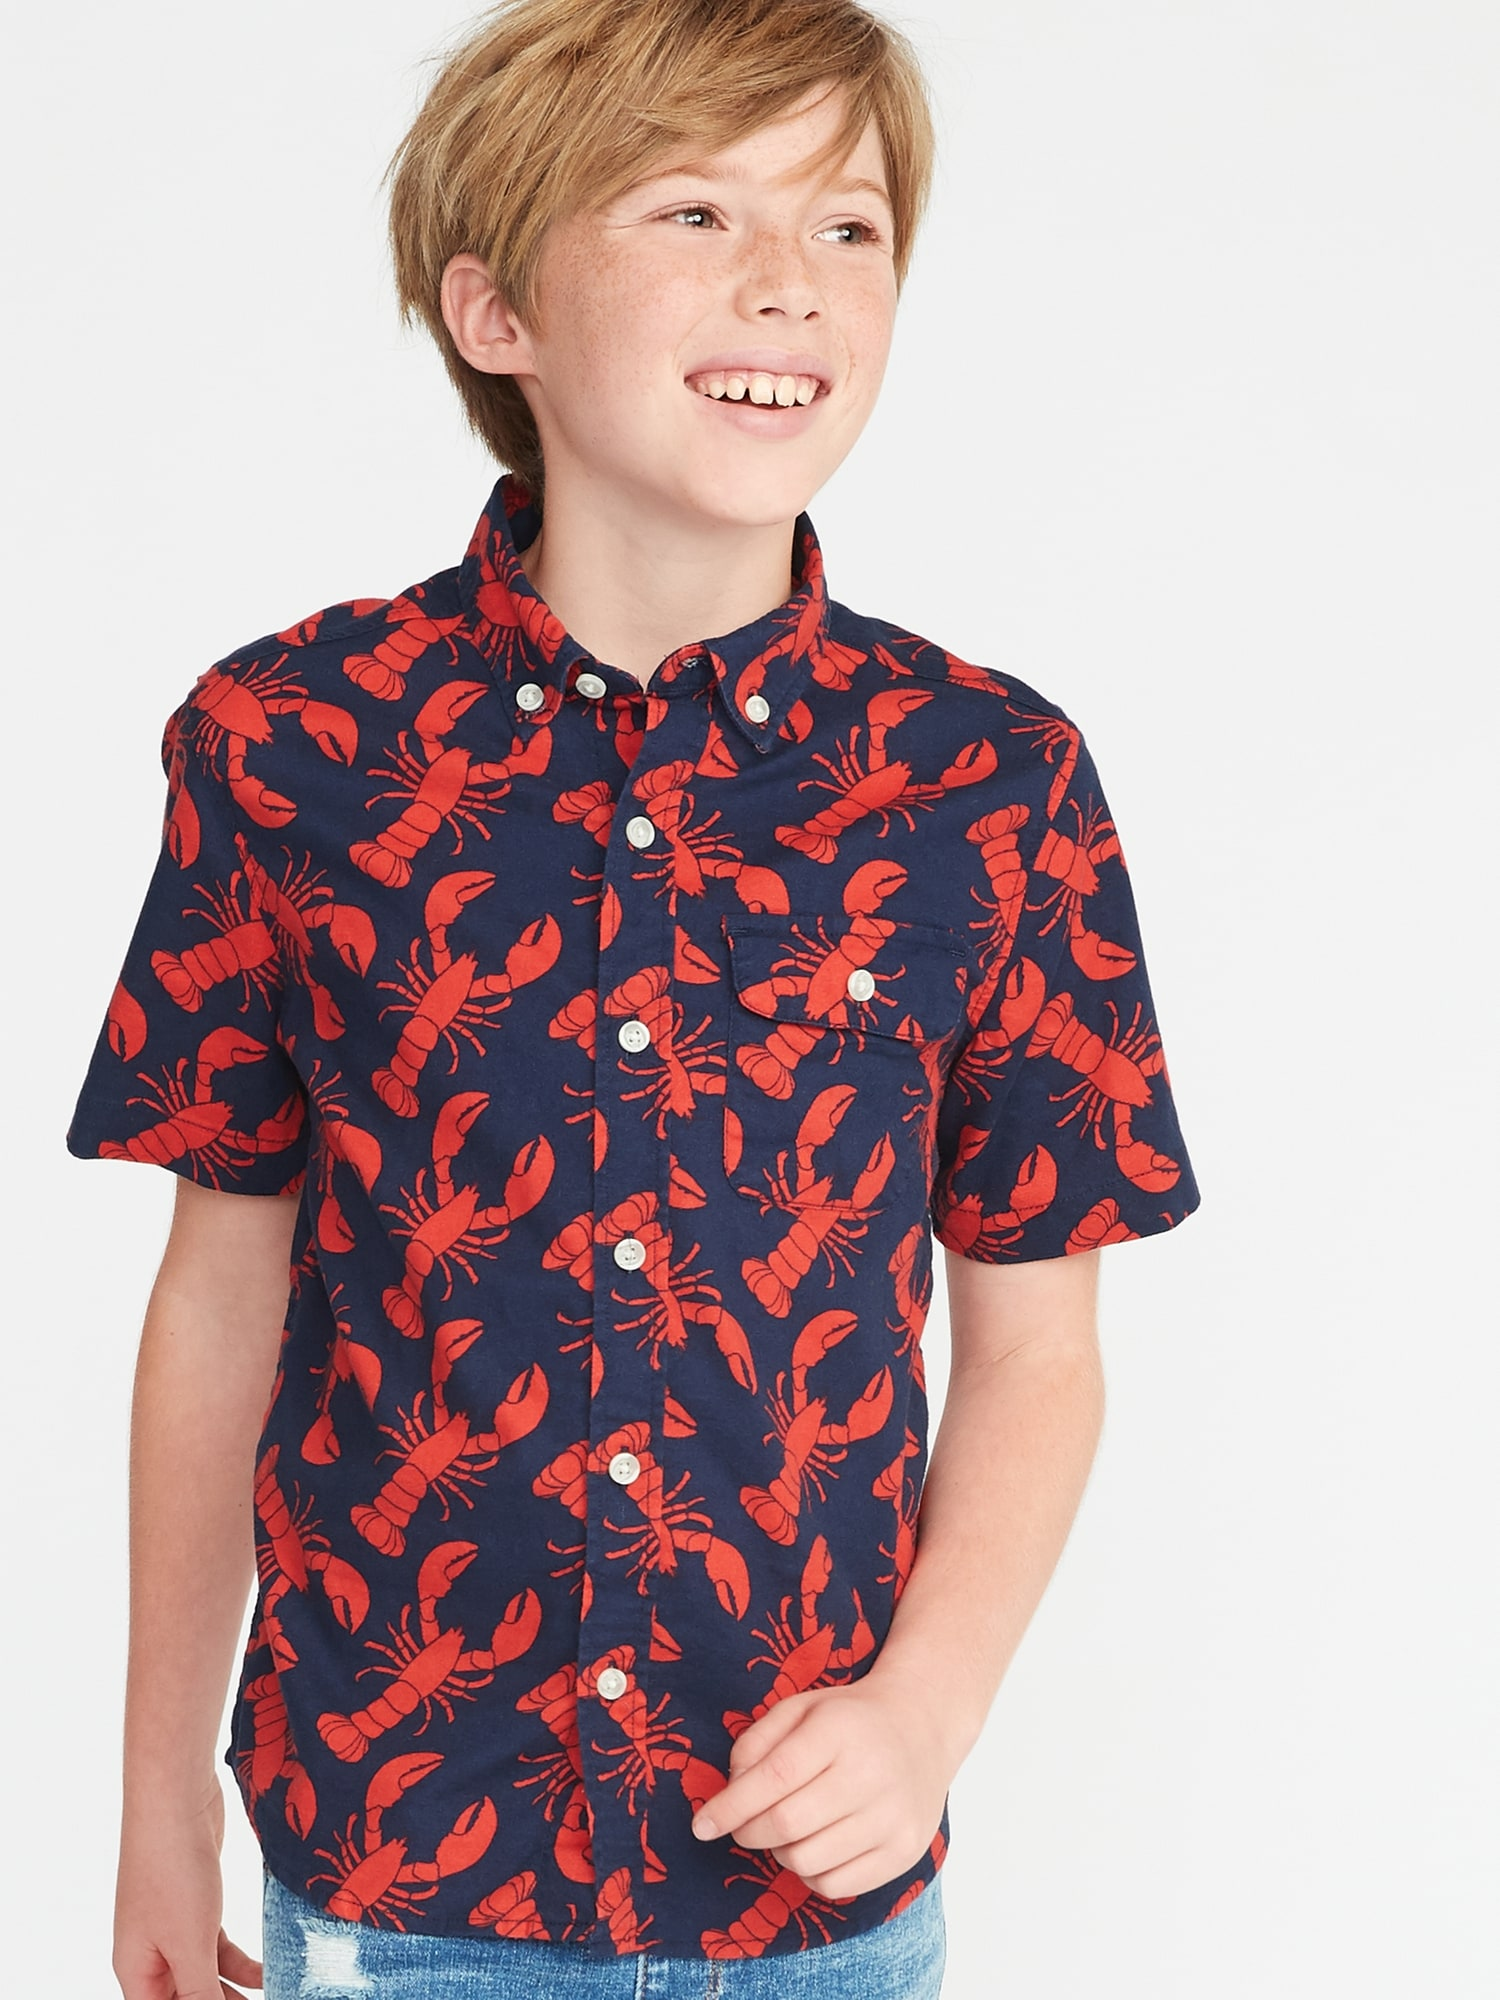 579e13ab Classic Built-In Flex Oxford Shirt for Boys | Old Navy